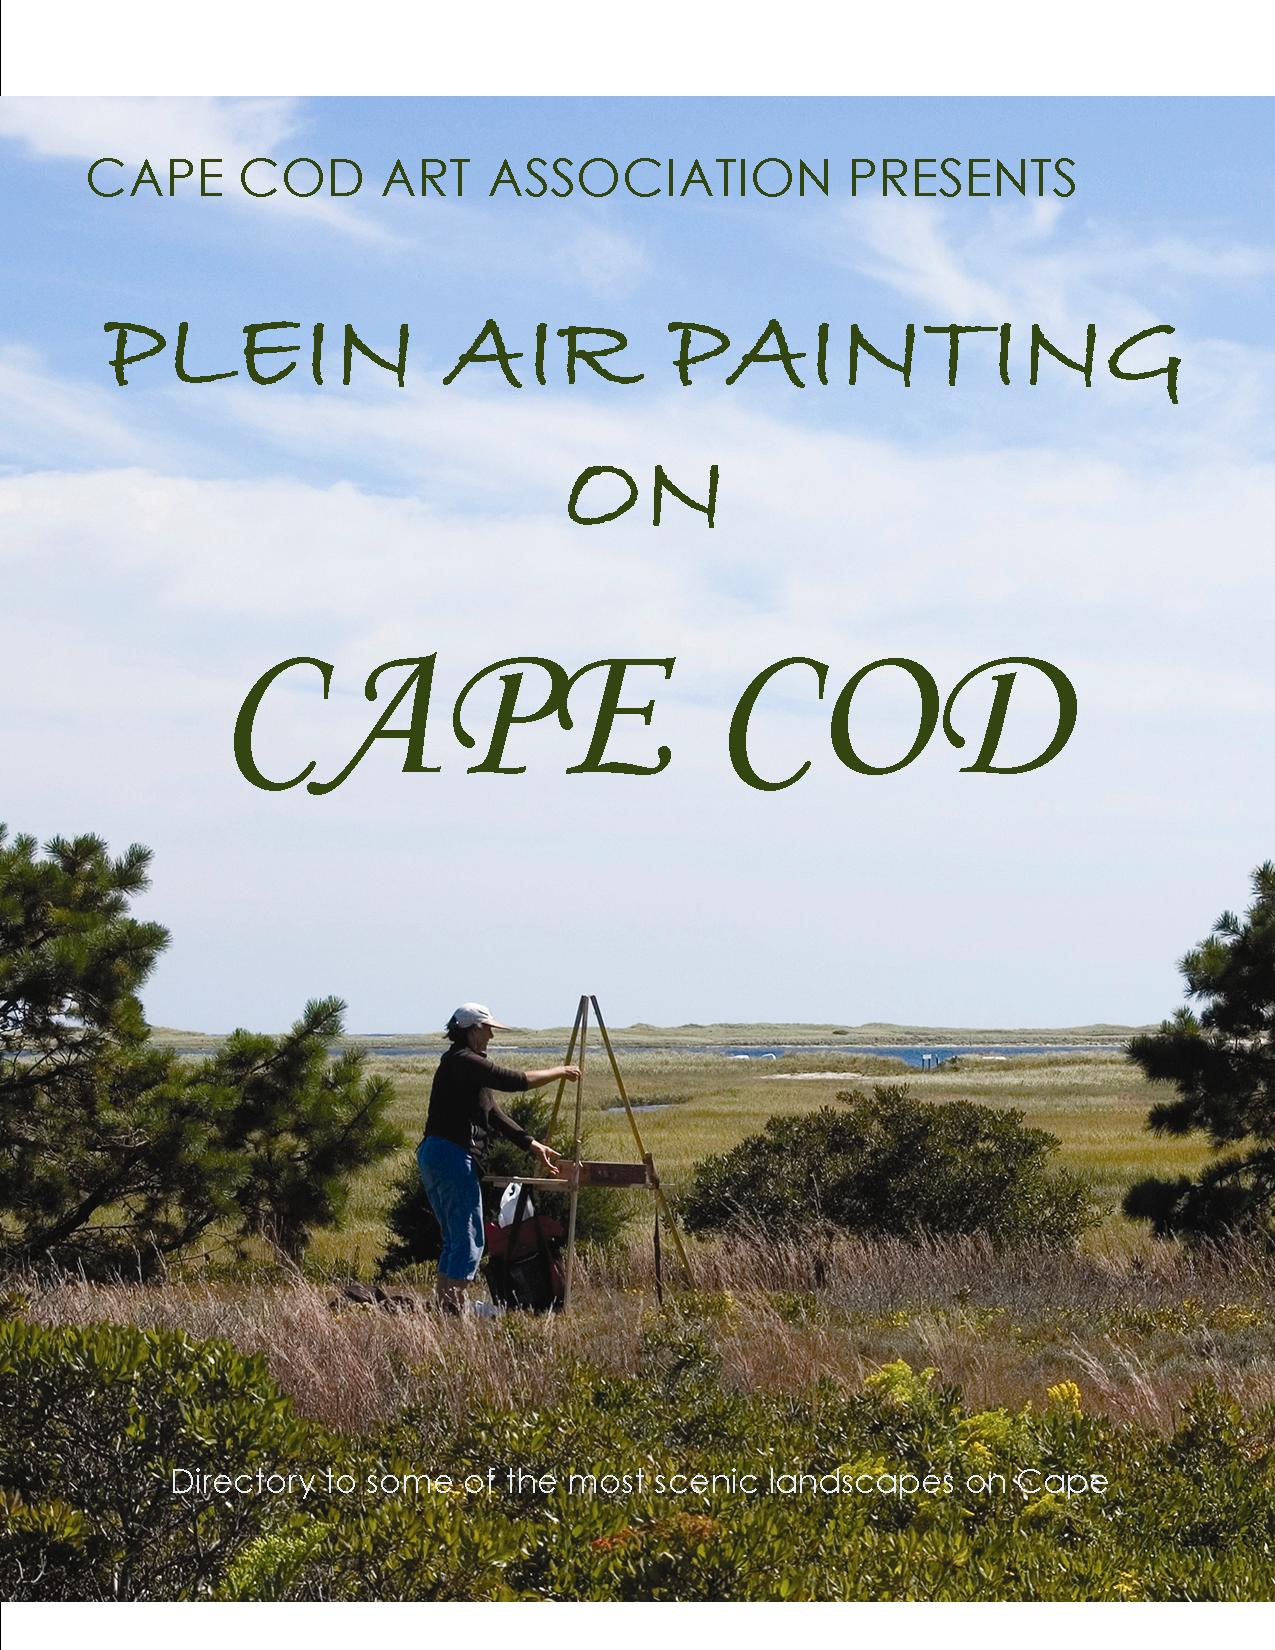 Plein Air on Cape Cod e-book: Directory of the Most Picturesque Places on Cape Cod